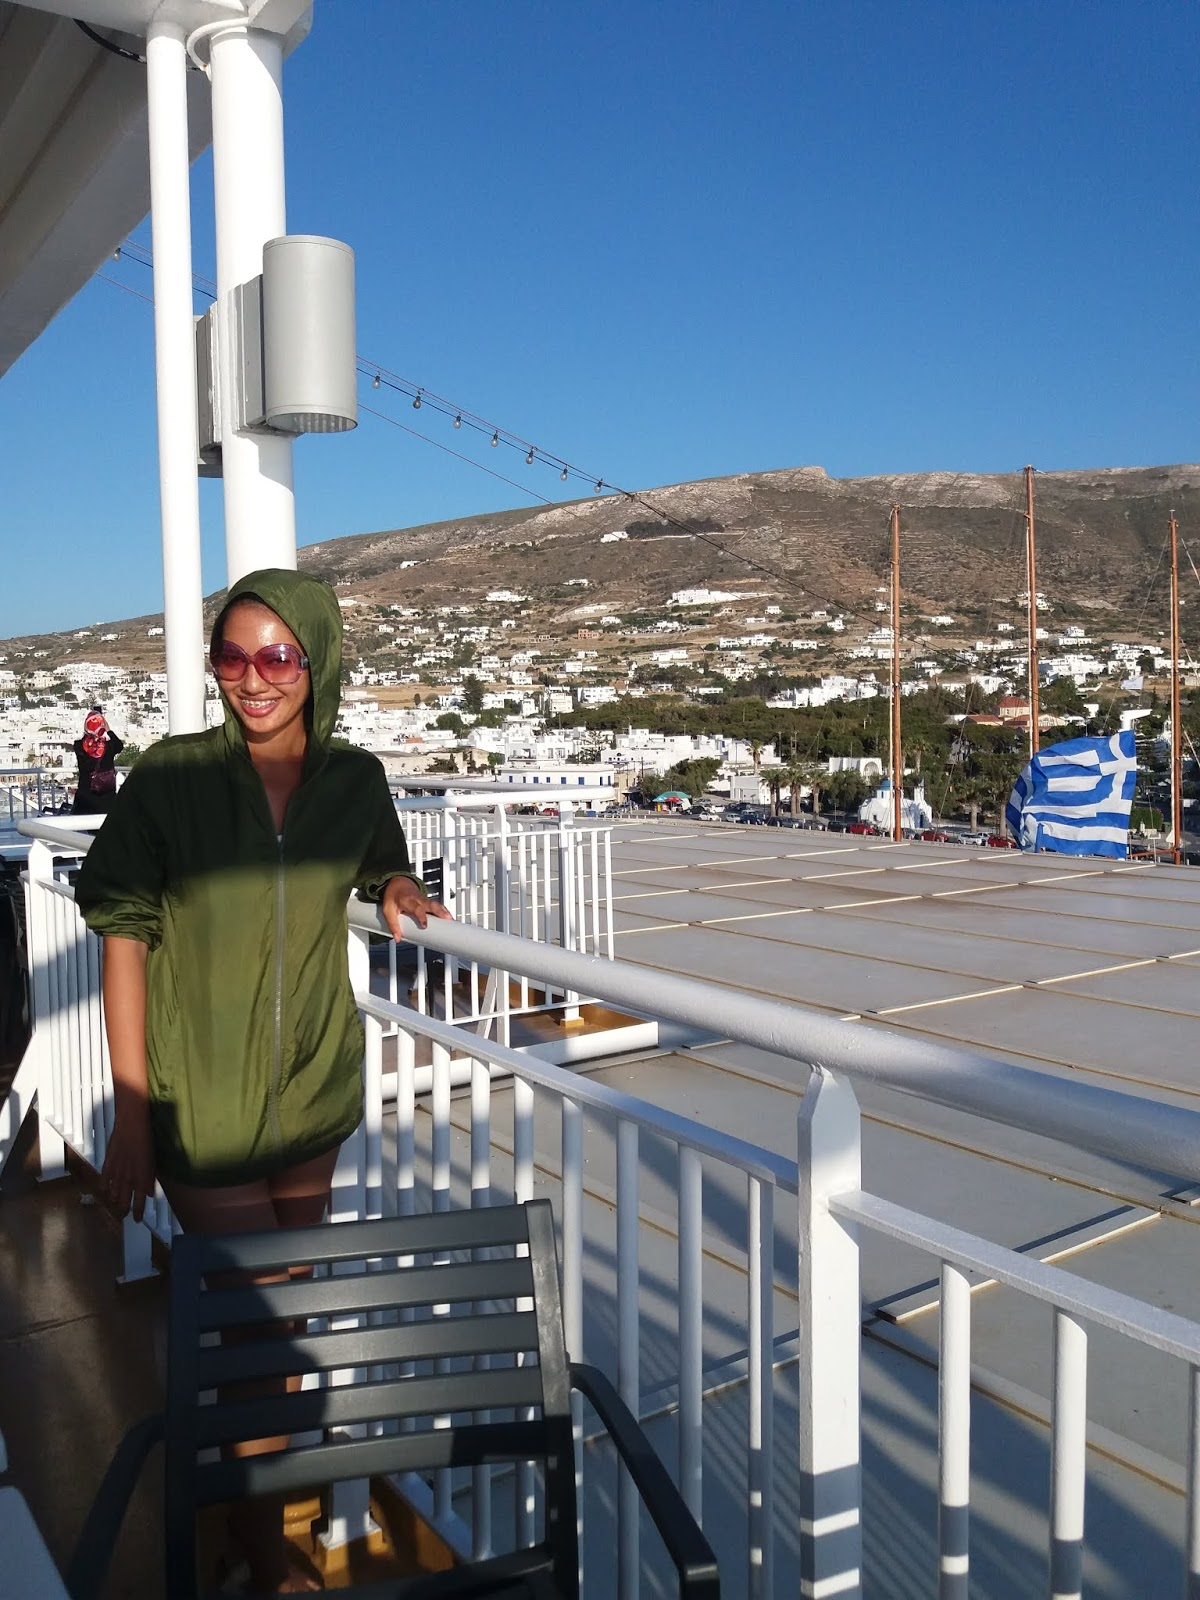 Blue Star Ferry to Santorini - how to travel in Santorini on a budget itinerary